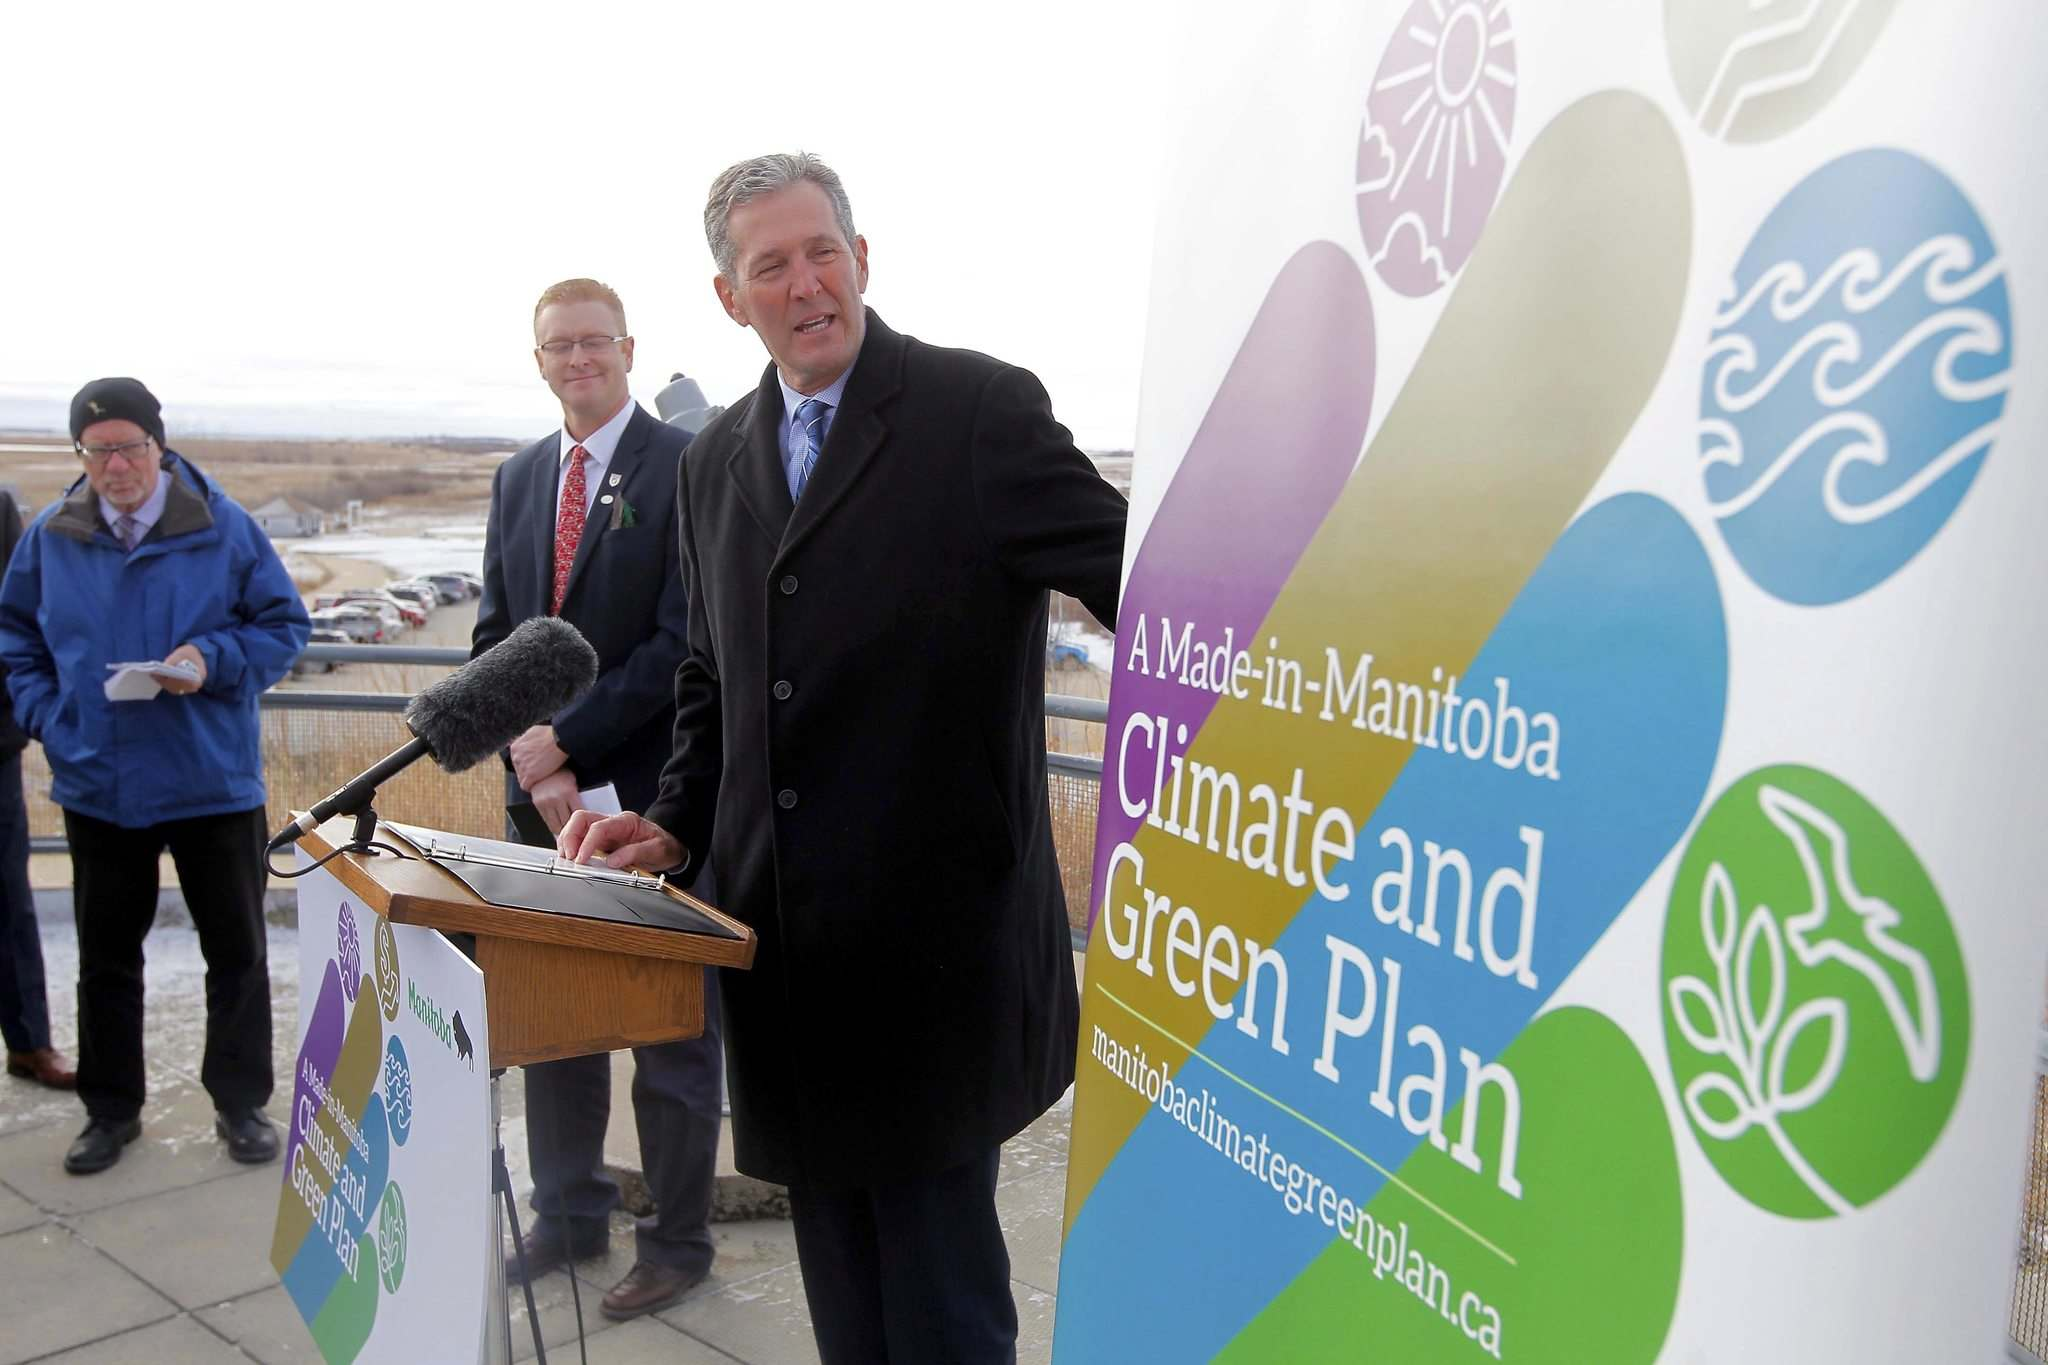 BORIS MINKEVICH / WINNIPEG FREE PRESS files</p><p>Manitoba&rsquo;s truck drivers expected more from the Made-in-Manitoba Climate and Green Plan, which was unveiled by Premier Brian Pallister last October.</p>